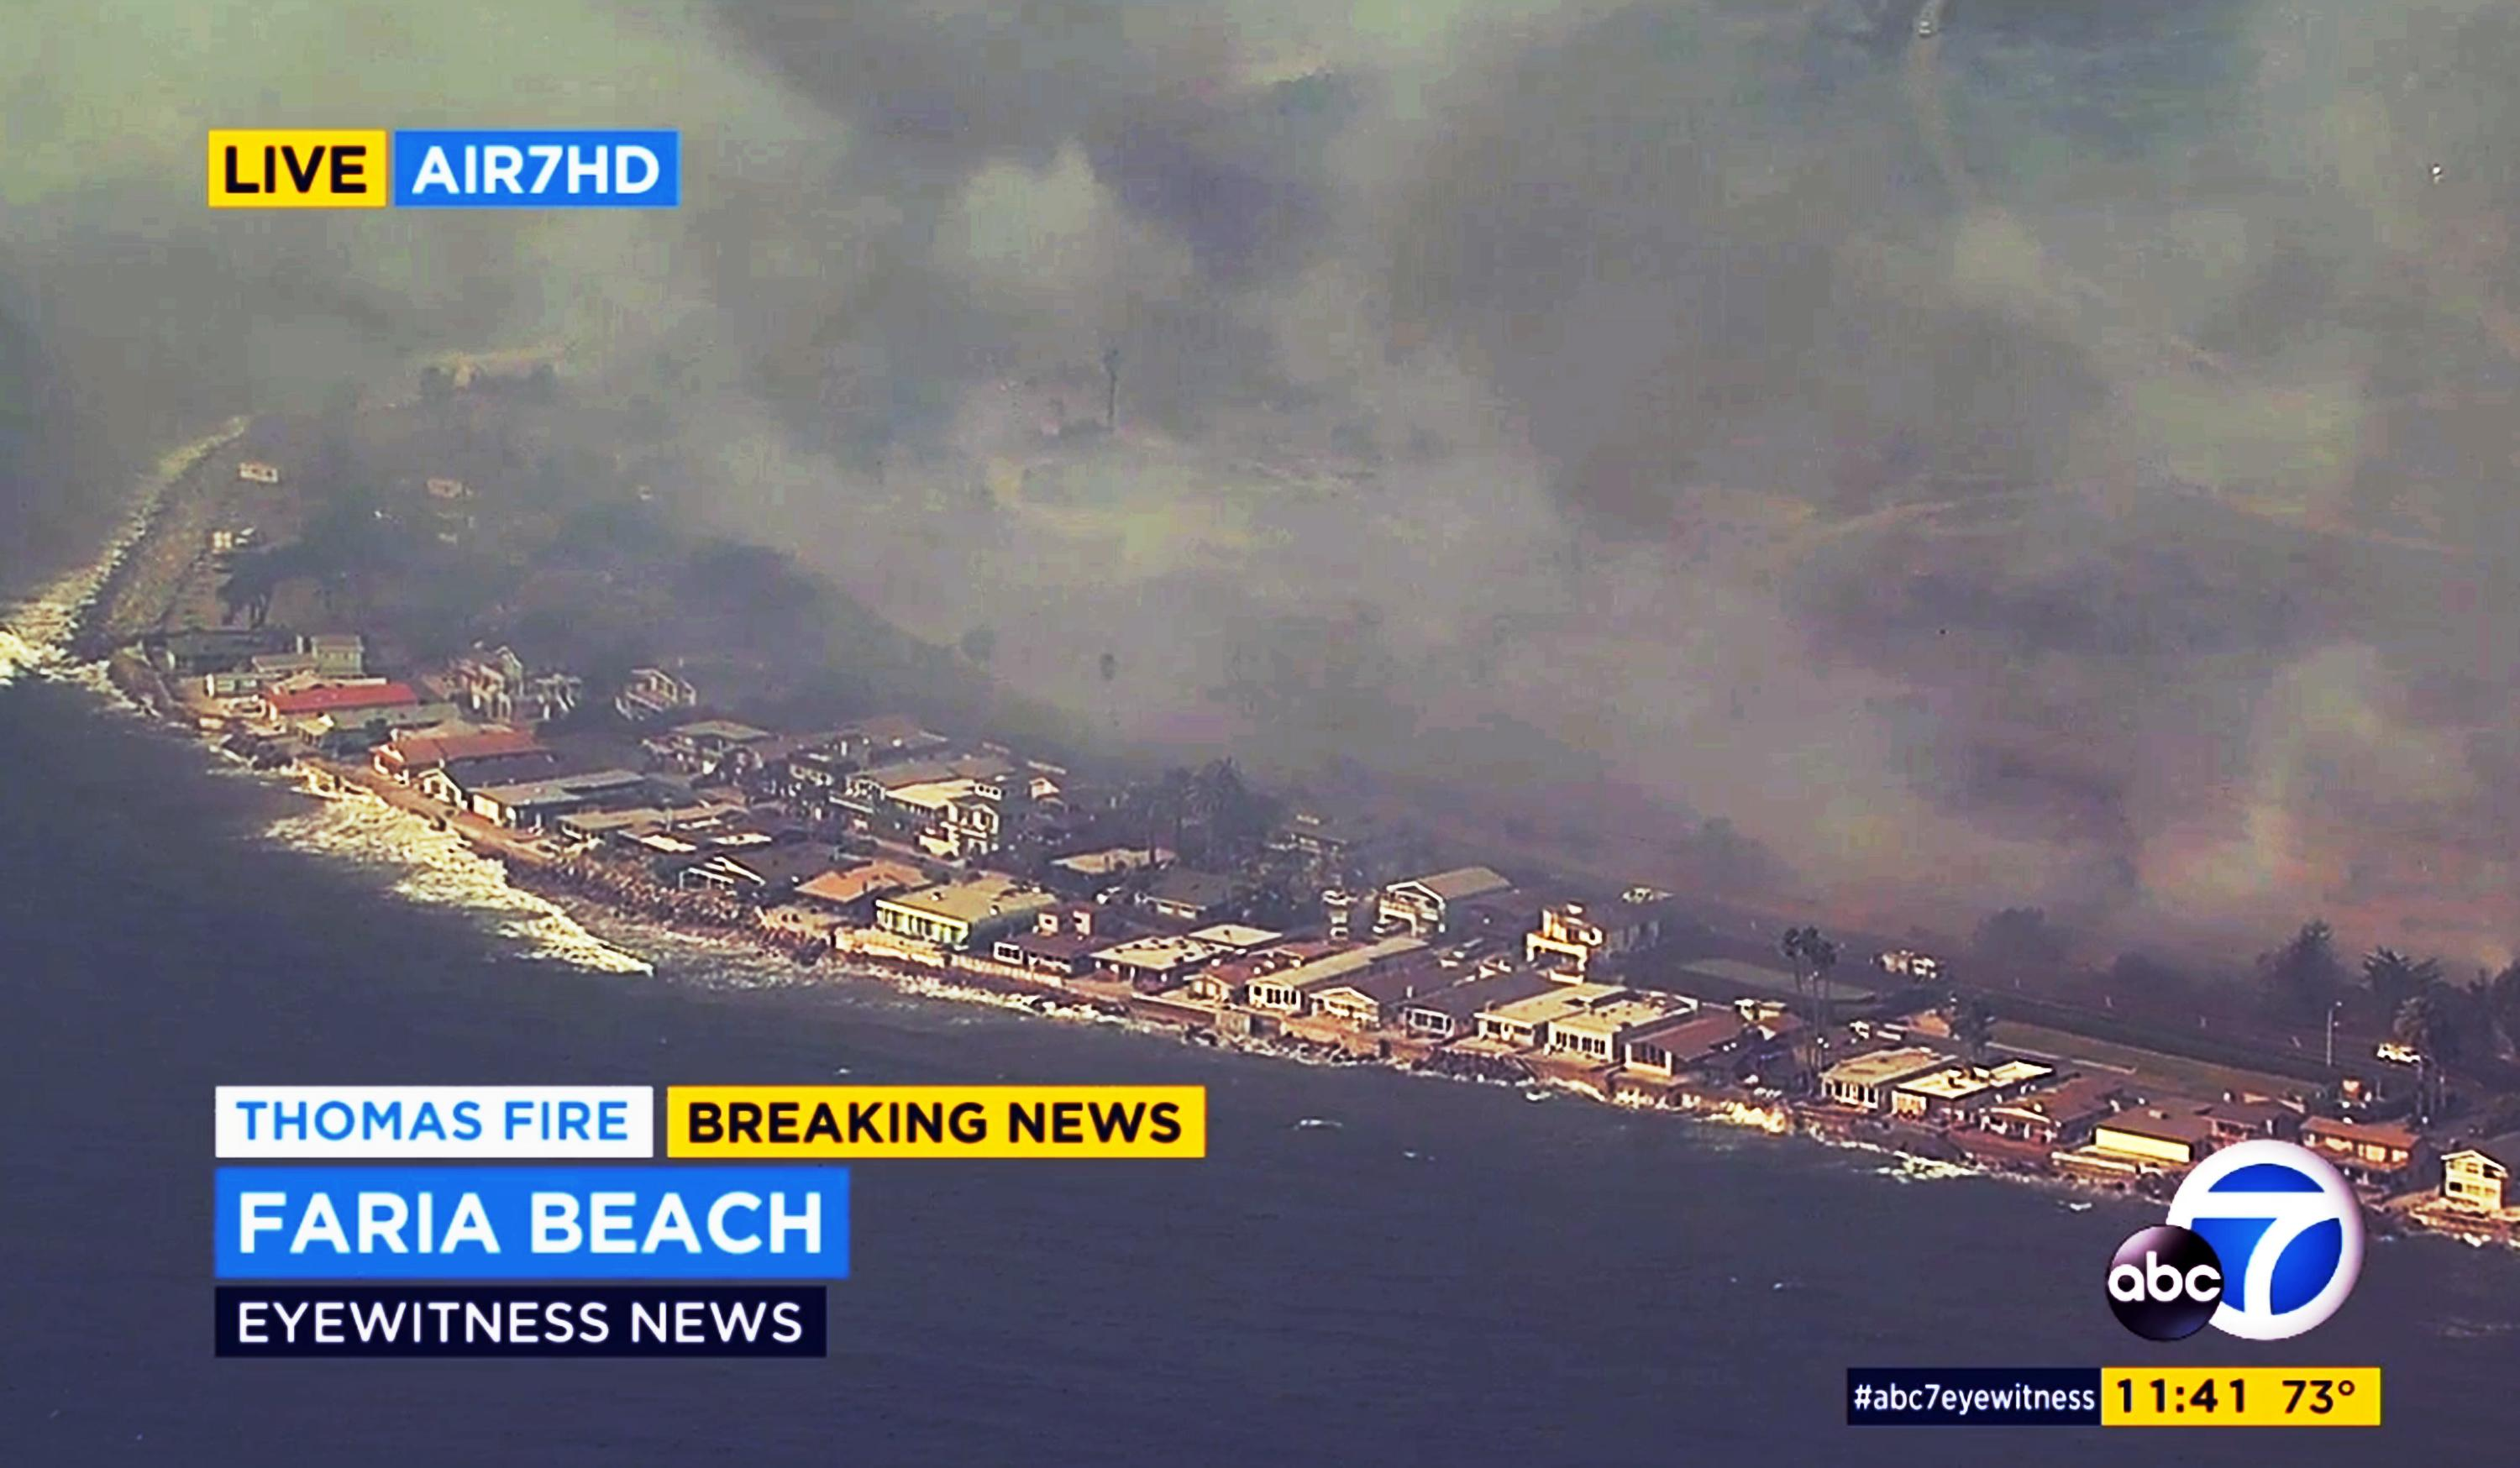 This aerial view from video provided by KABC-TV shows flames from a wildfire bearing down on homes on Faria Beach just outside Ventura, Calif., Thursday, Dec. 7, 2017. It appeared that firefighters were able to stop the flames before they overran the area. (KABC-TV via AP)